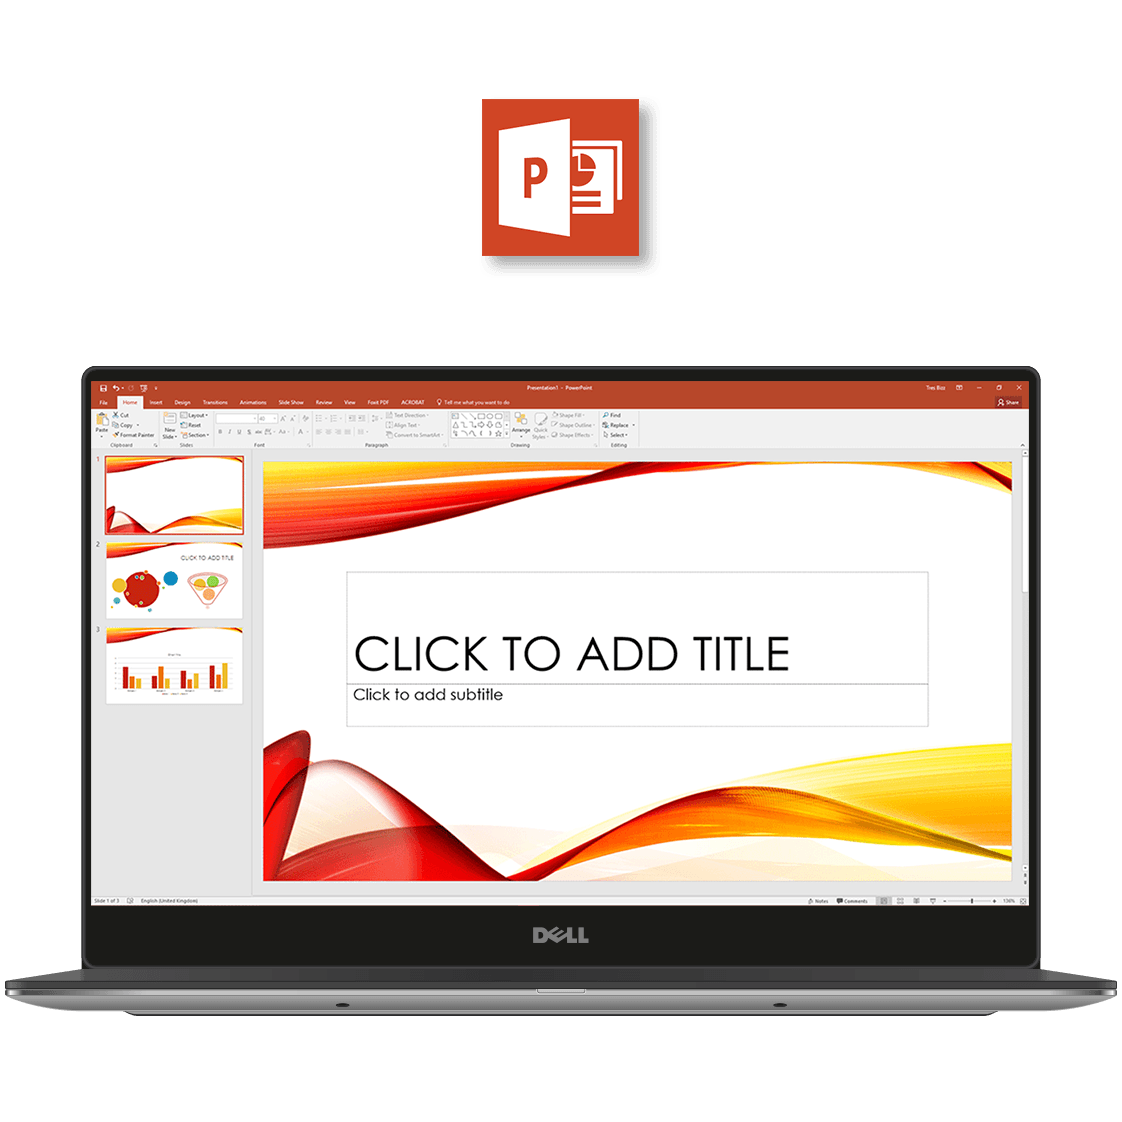 Microsoft PowerPoint 2013 LicenceDeals.com